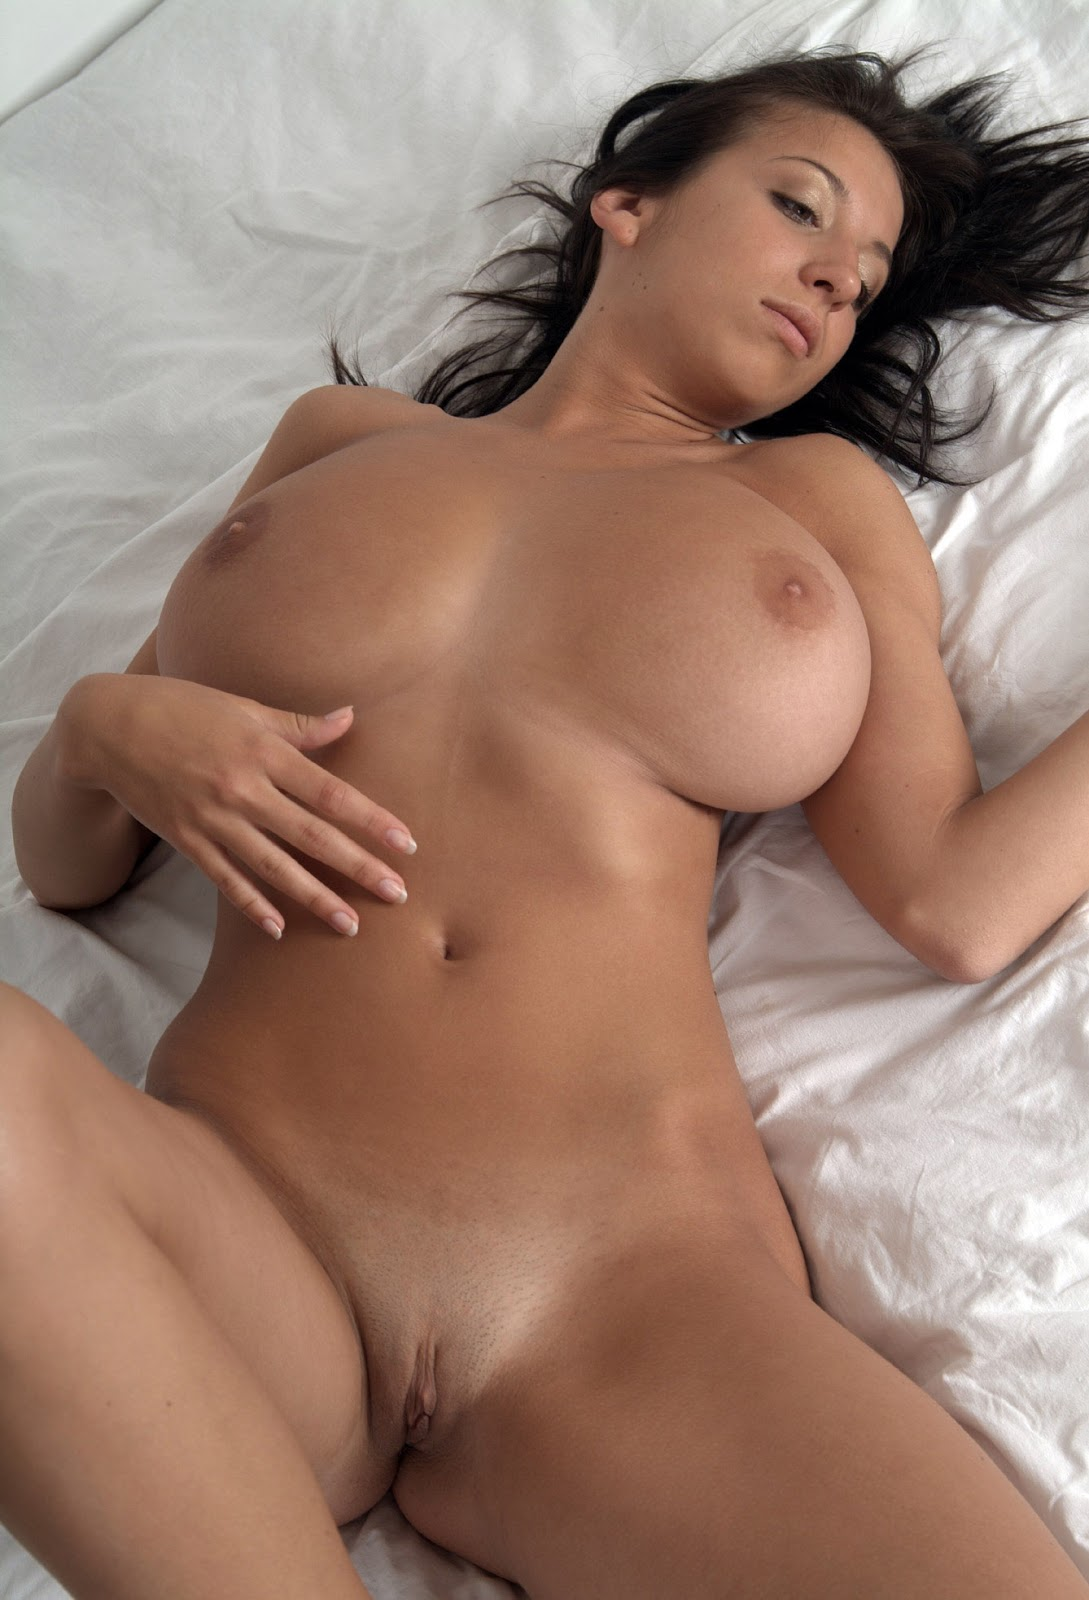 Naked Women With Sexy Boobs 80